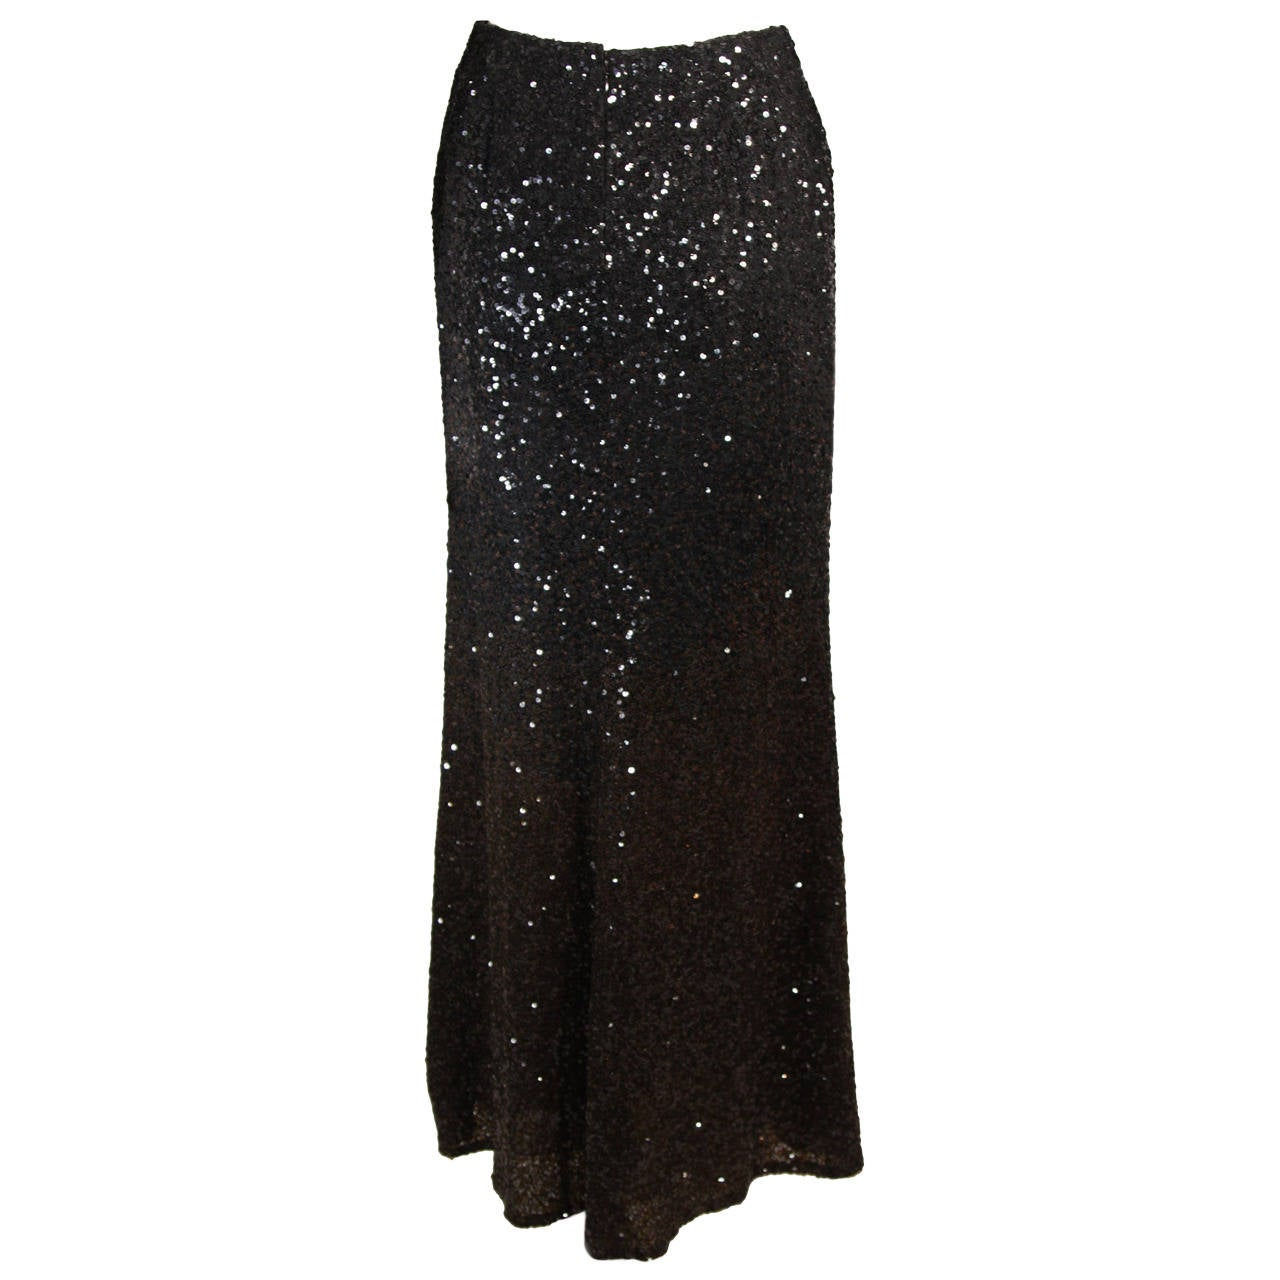 Bill Blass Long Sequin Skirt Black to Brown Ombre Size 6